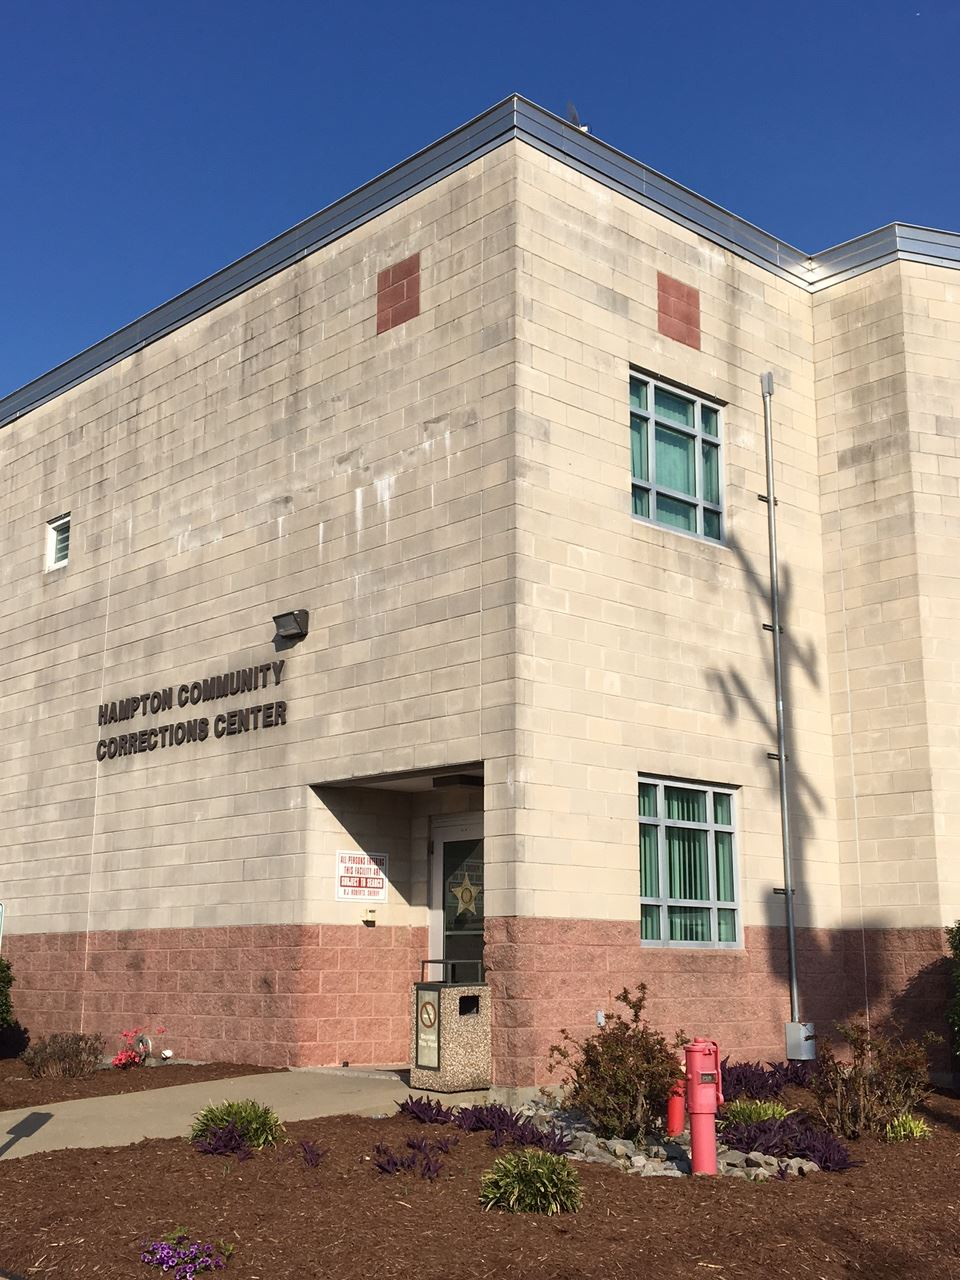 Hampton Community Corrections Center